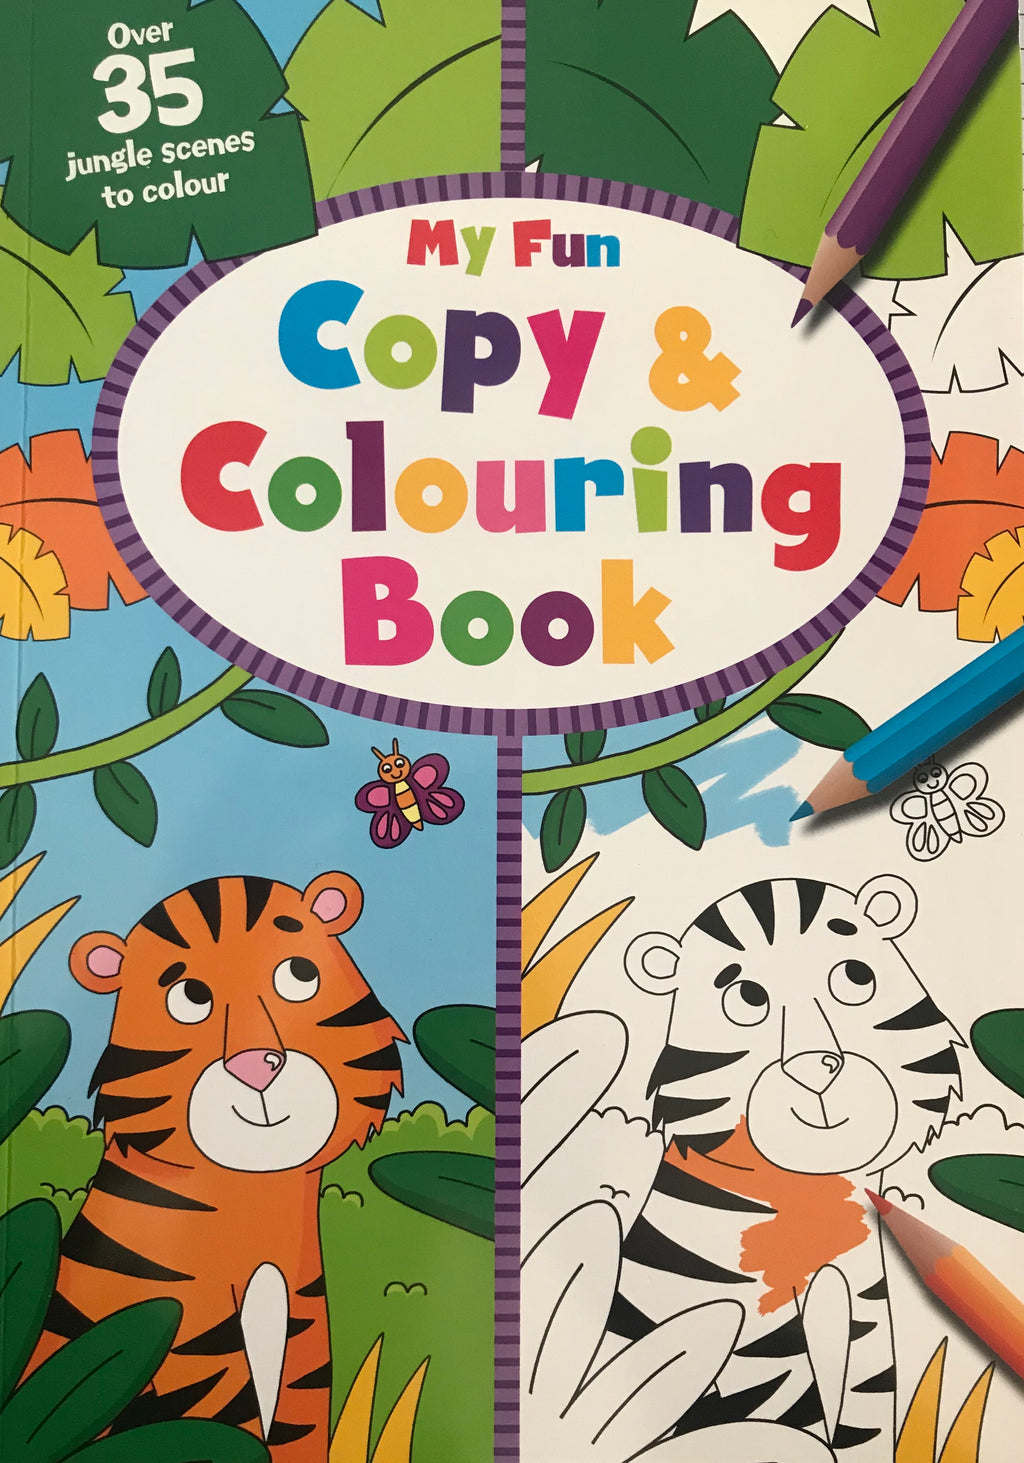 My Fun Copy & Colouring Book